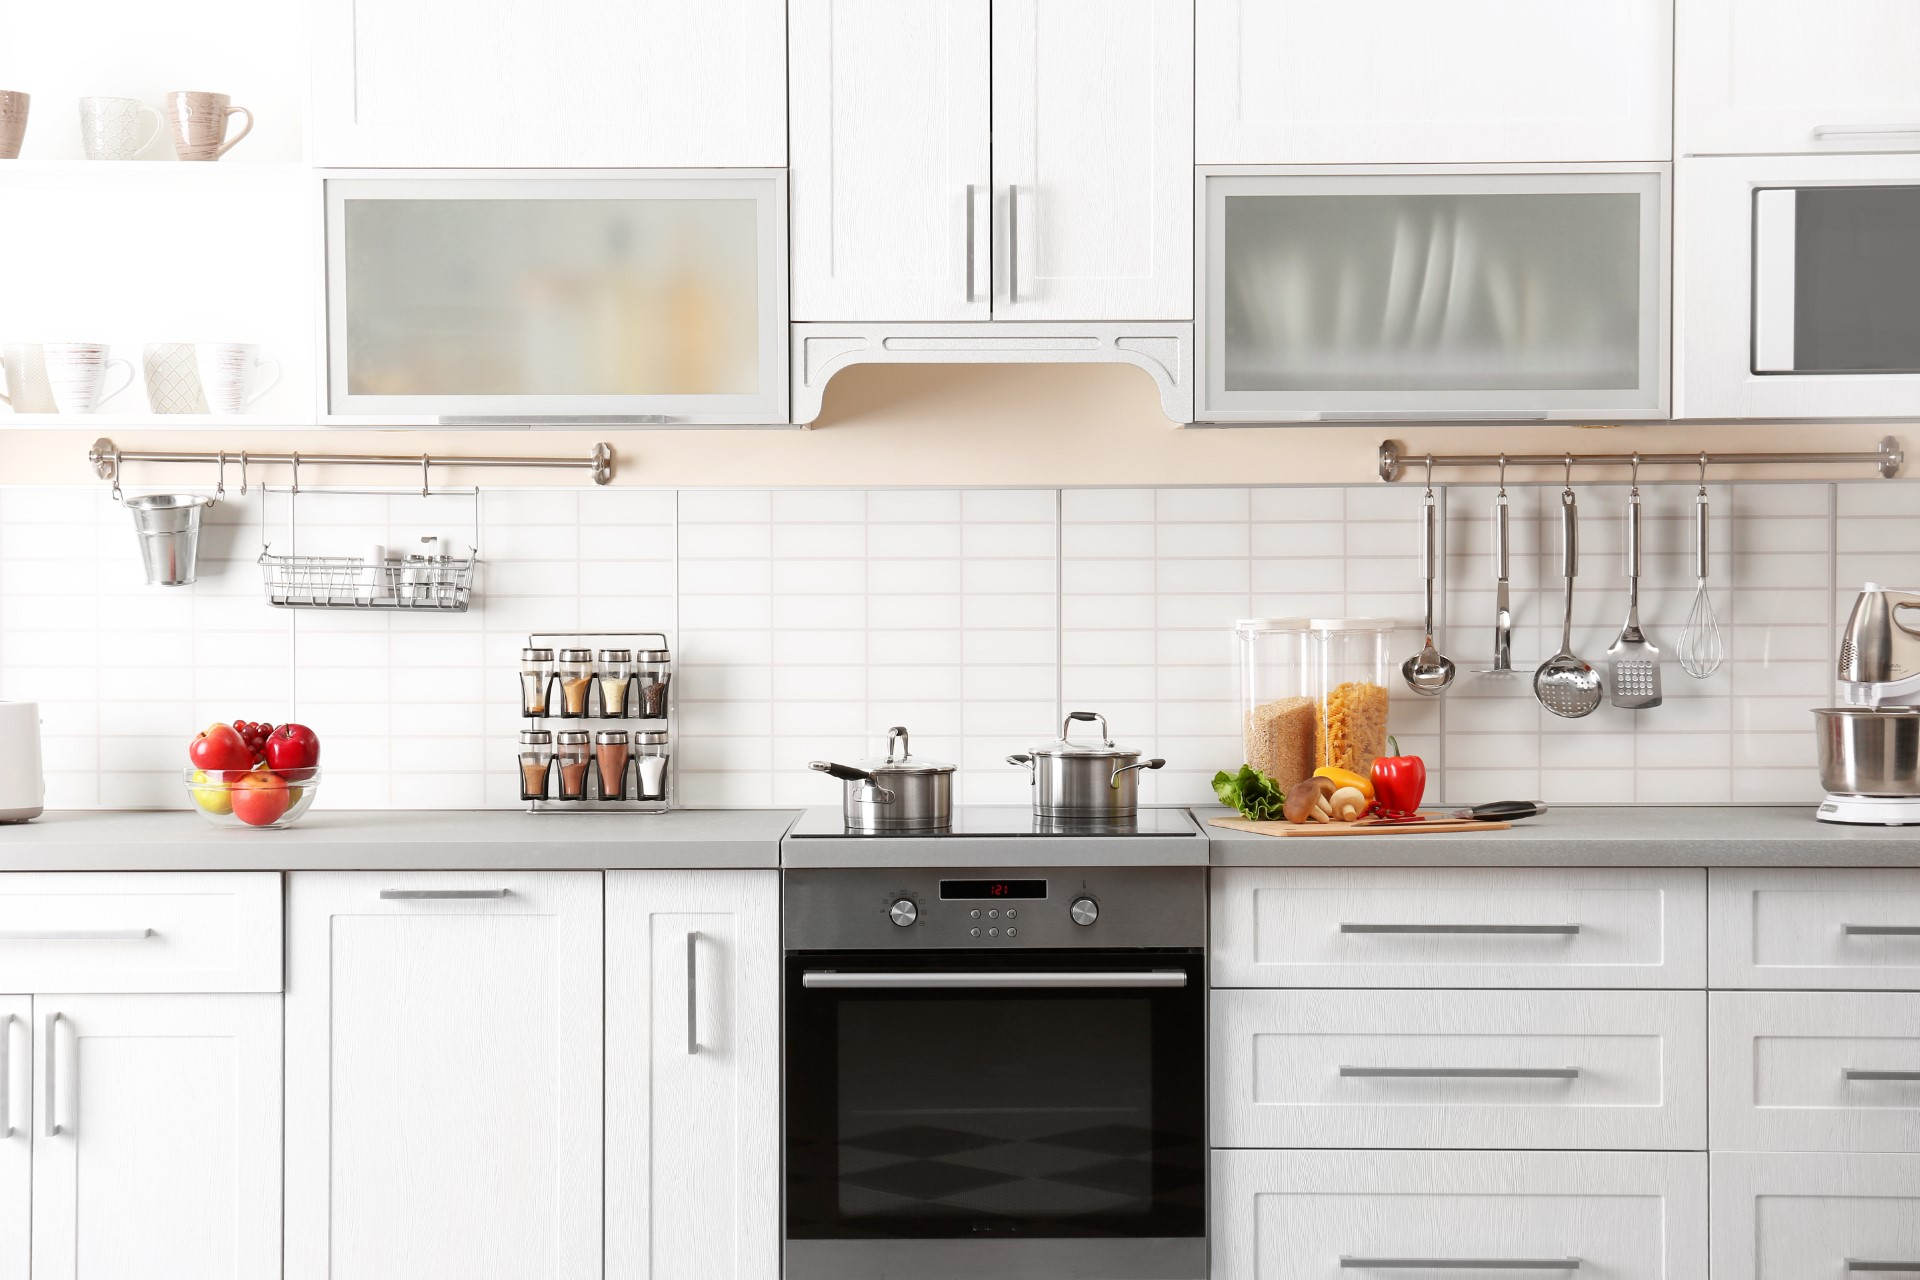 Going with the white kitchen design such as this is an excellent way to give the illusion of a larger space. If you have a smaller kitchen and you're looking to maximize your space, this is the layout you need.